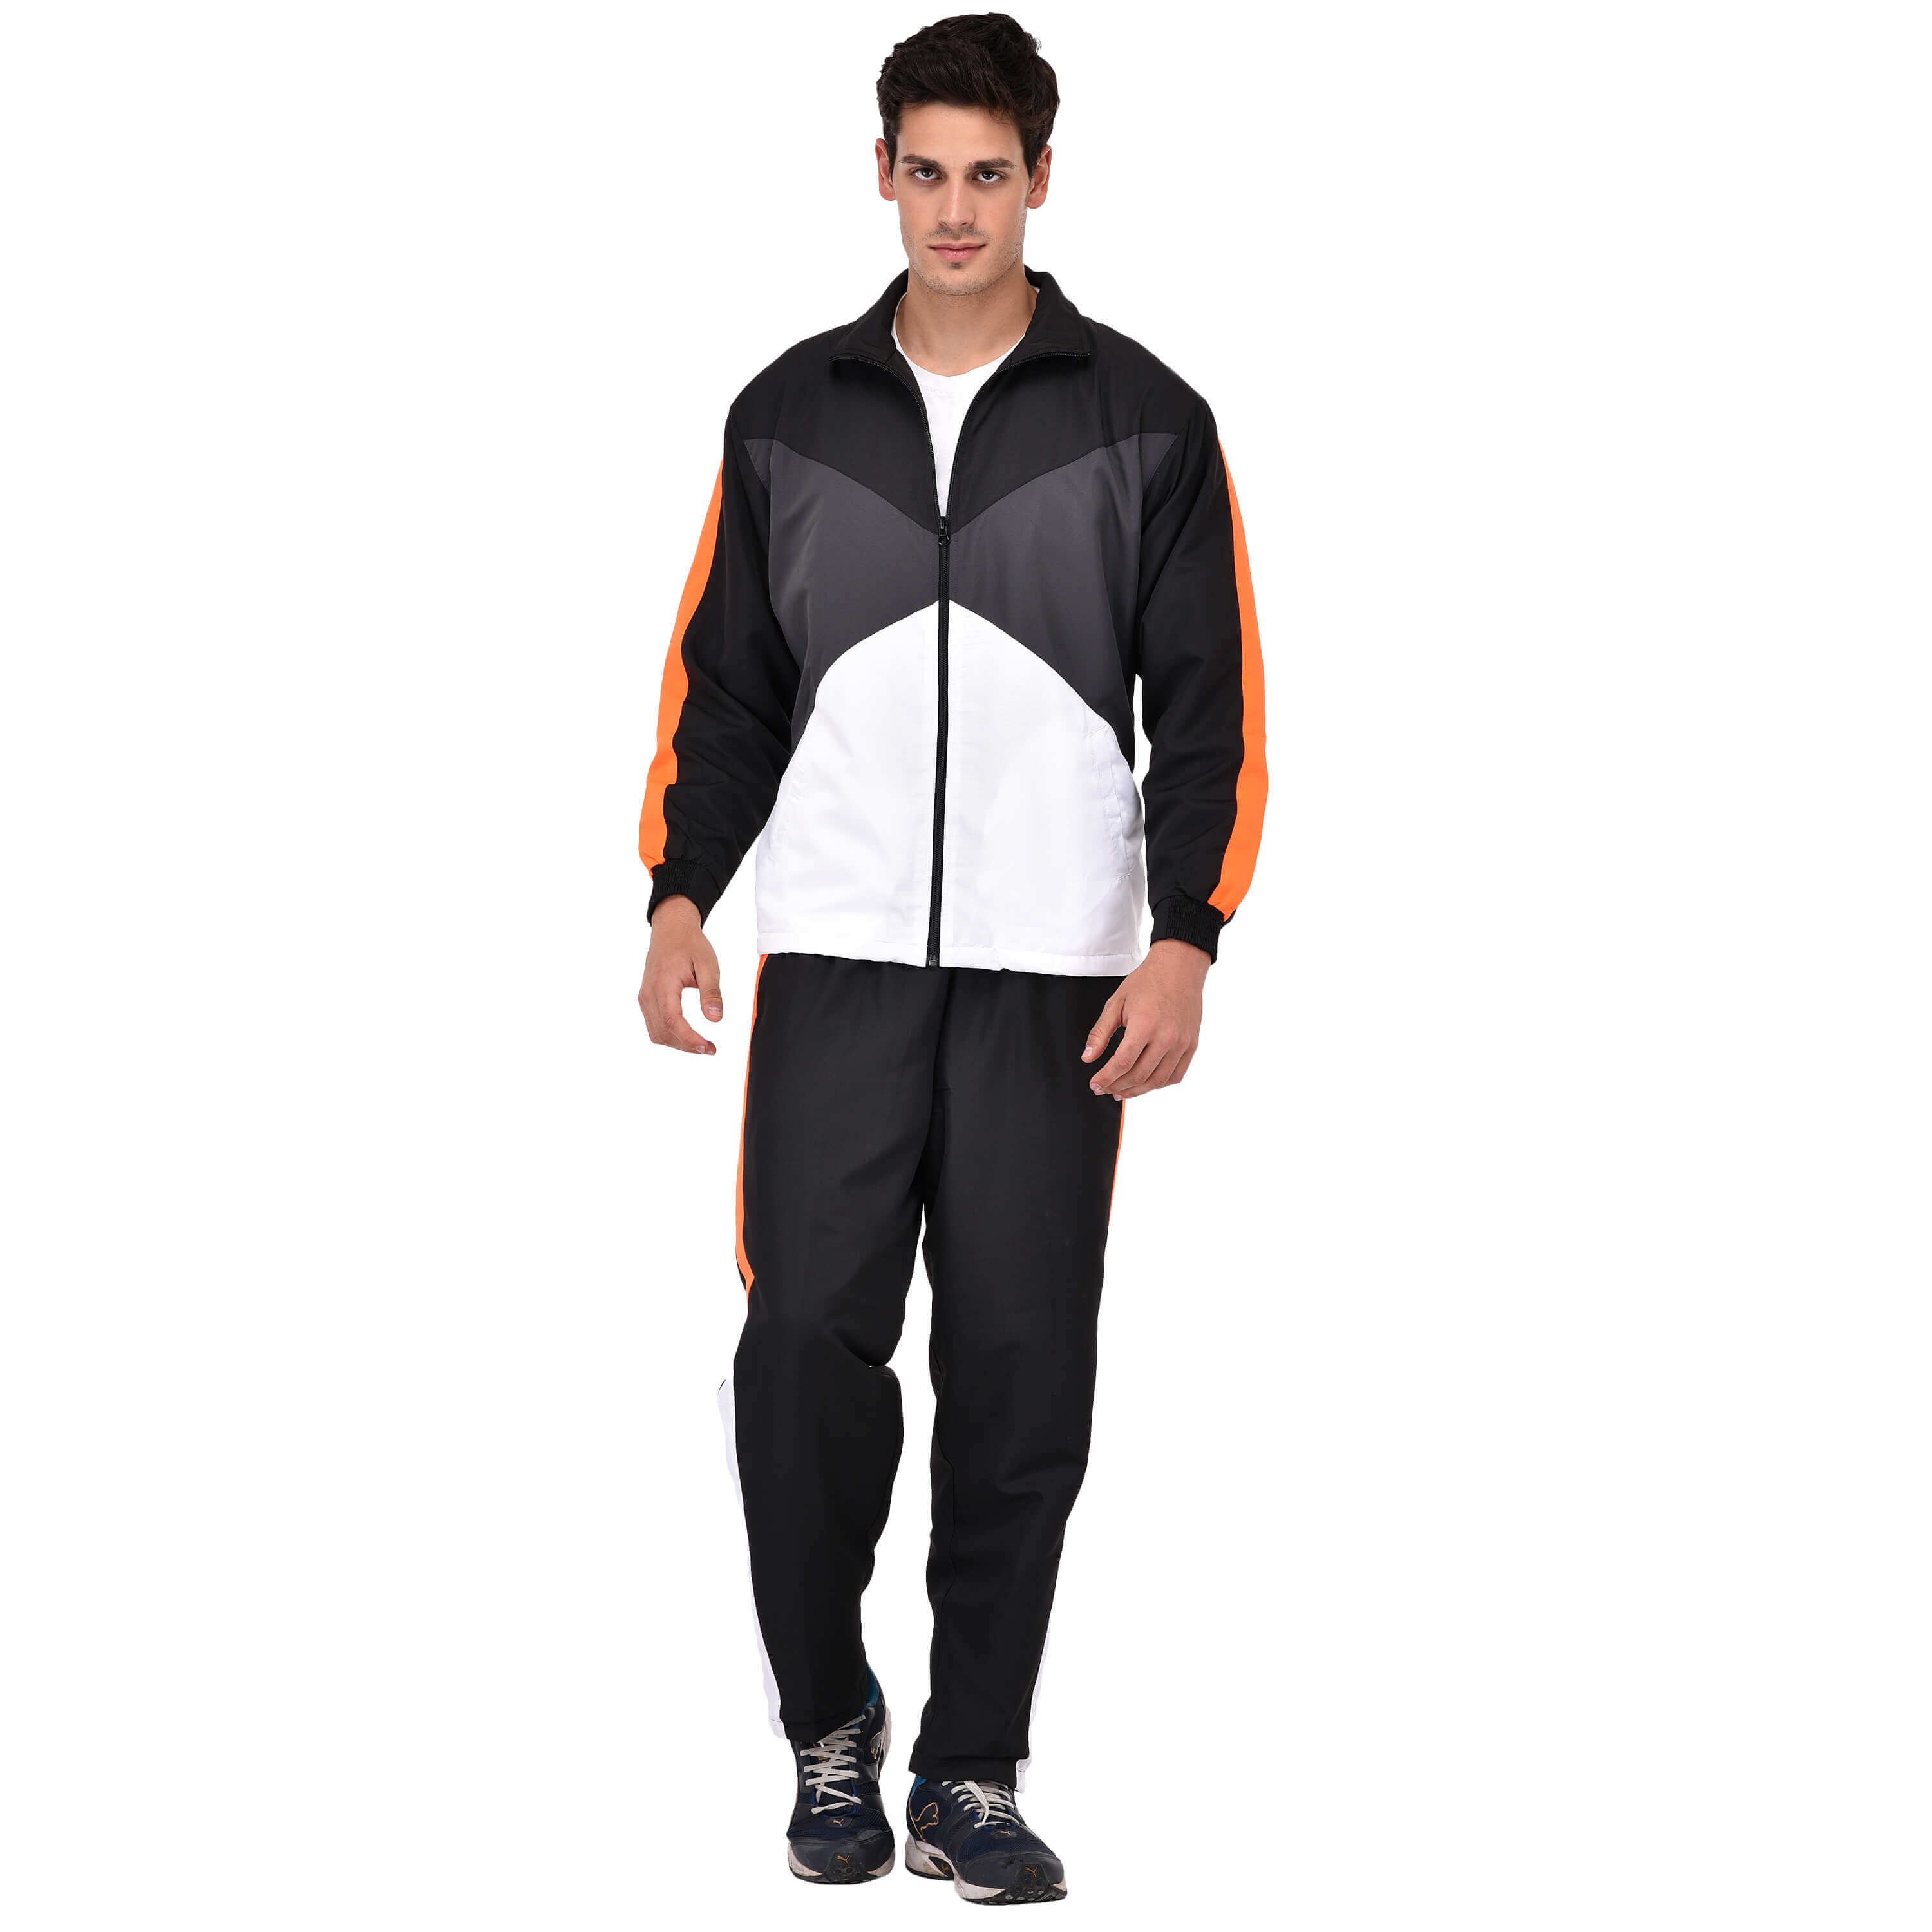 Sports Tracksuit Manufacturers in Pune